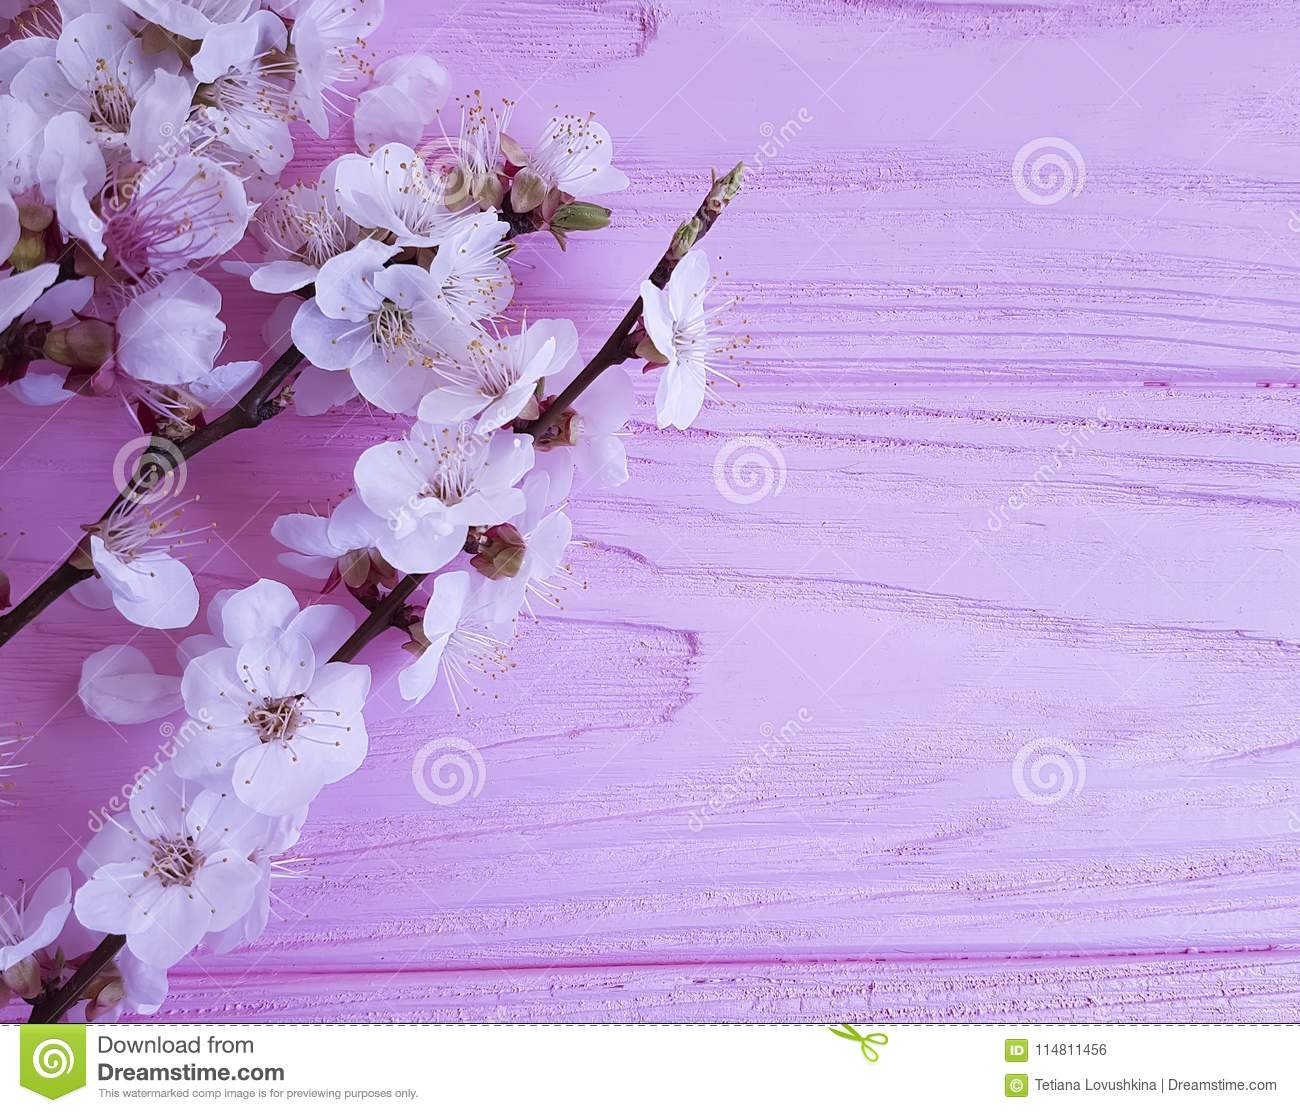 Cherry blossom branch on a pink wooden background